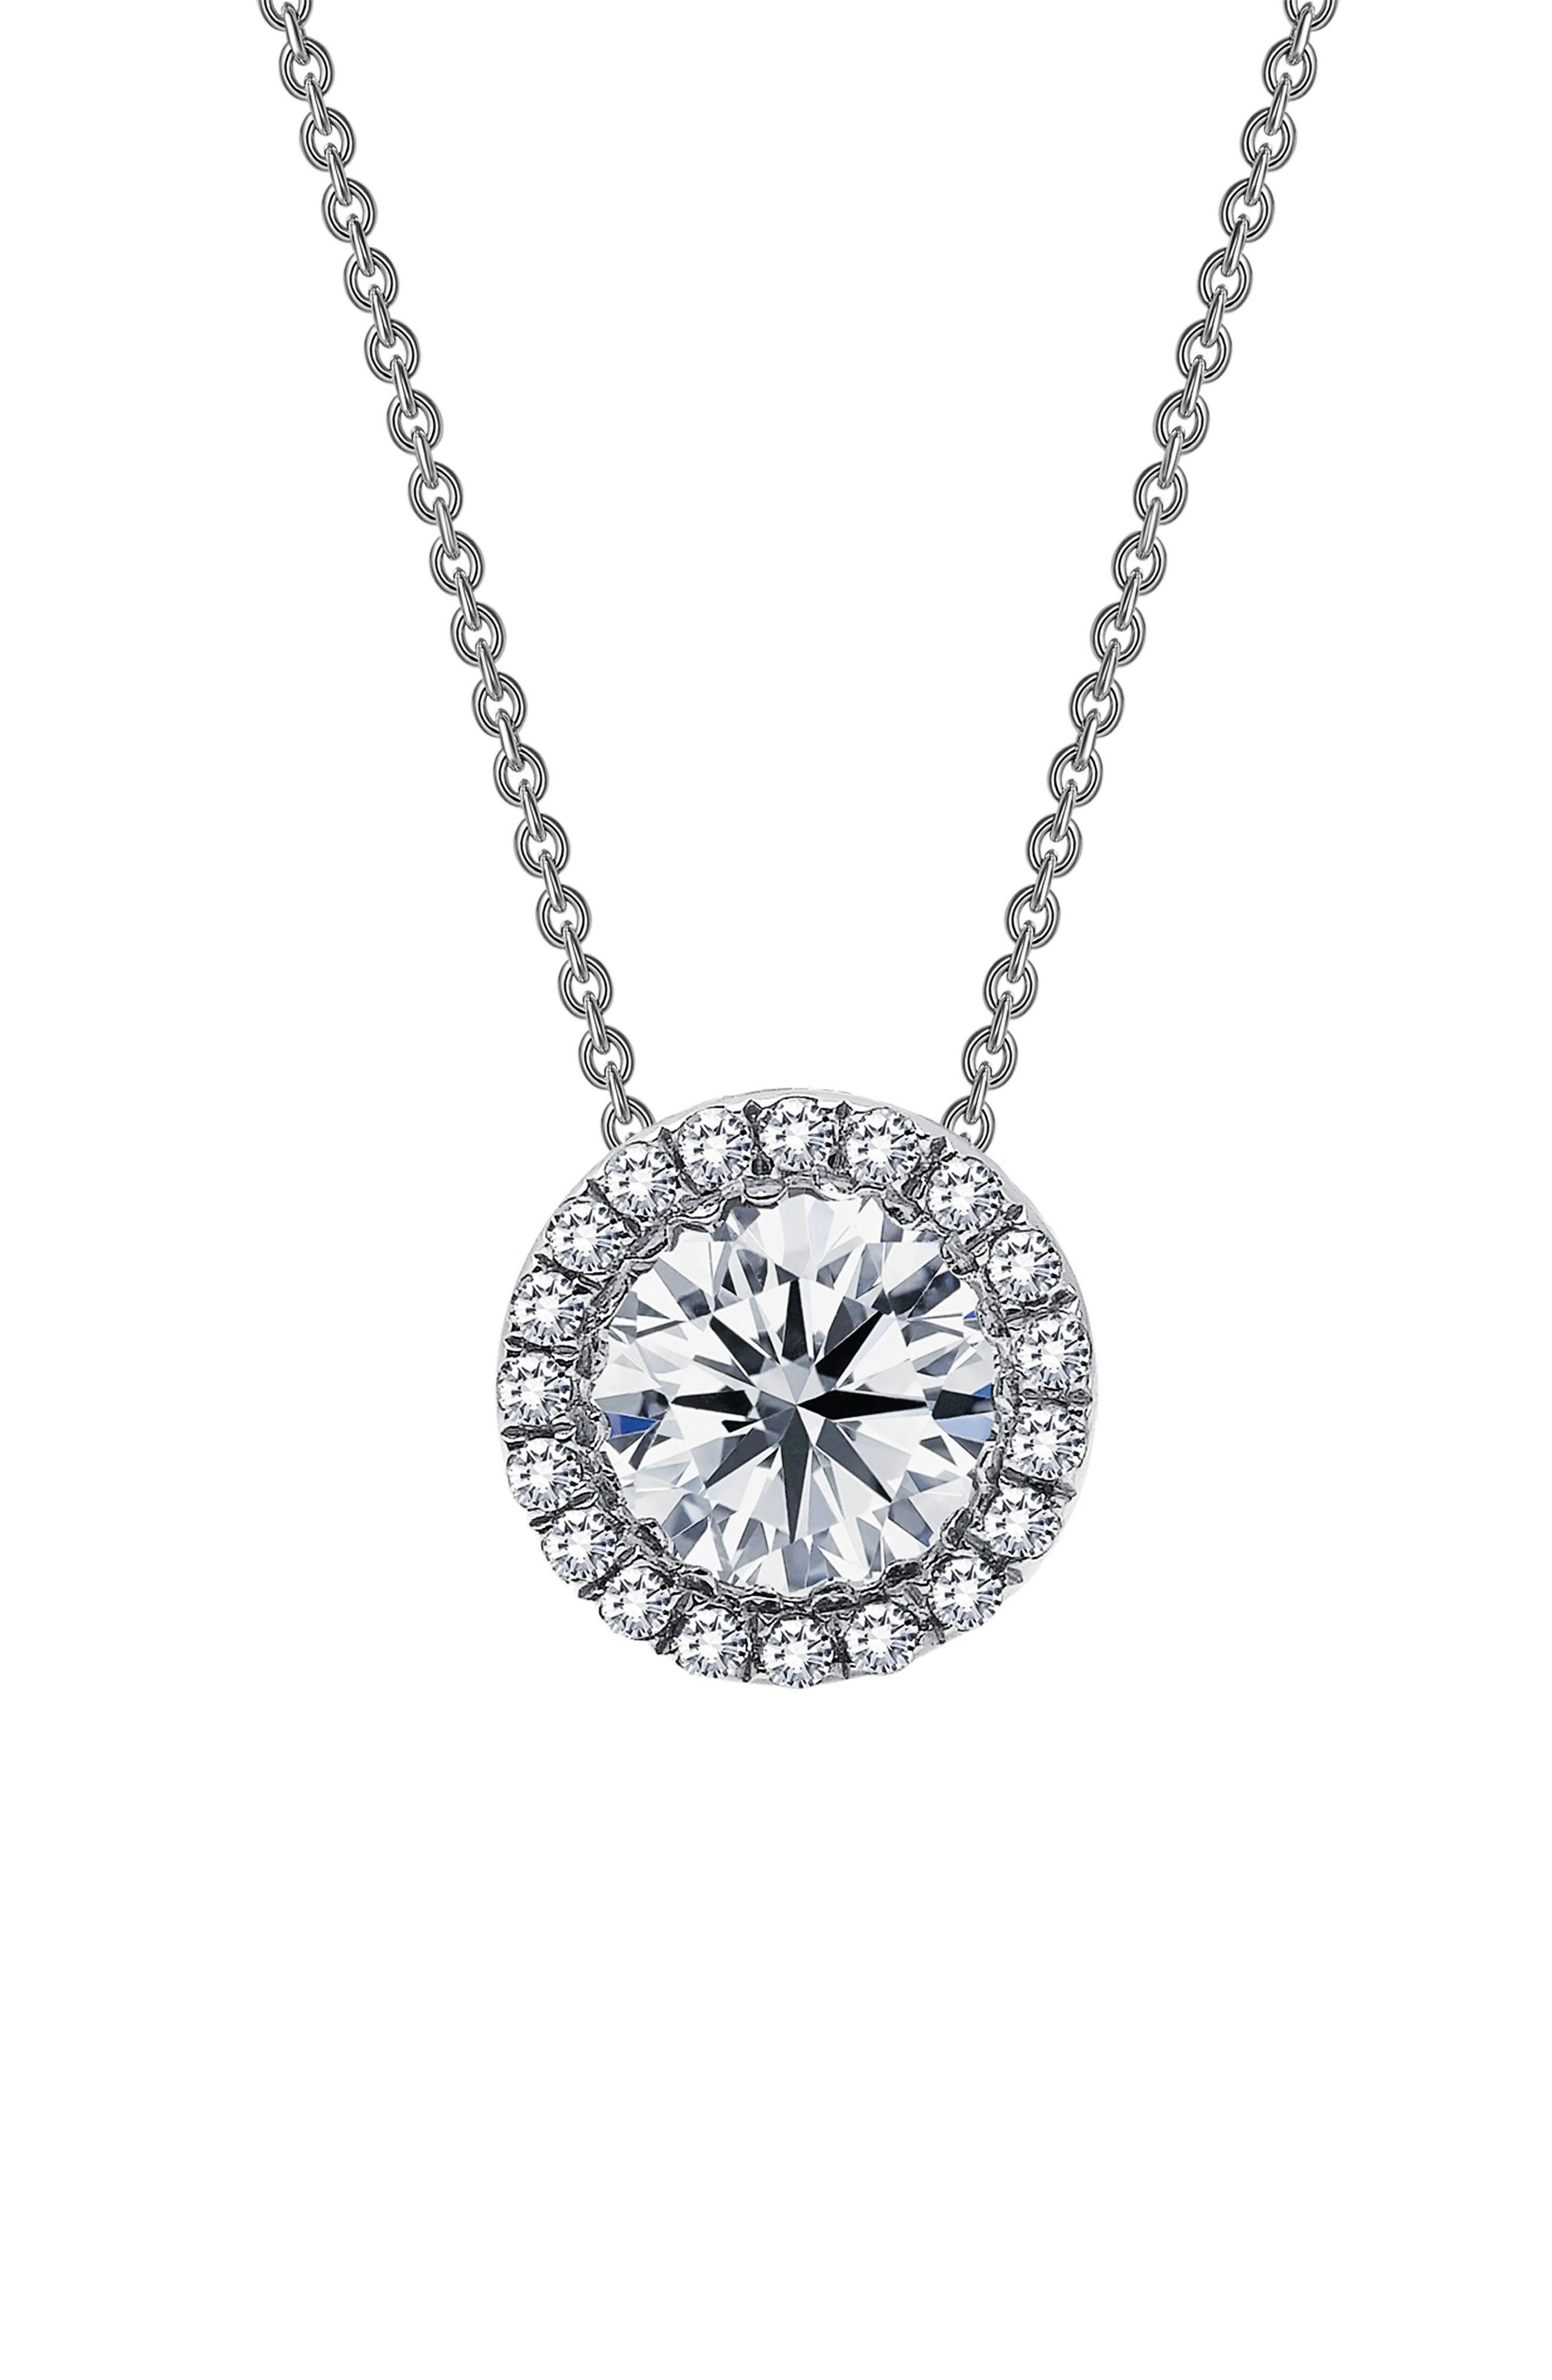 Simulated Diamond Pendant Necklace,                         Main,                         color, SILVER